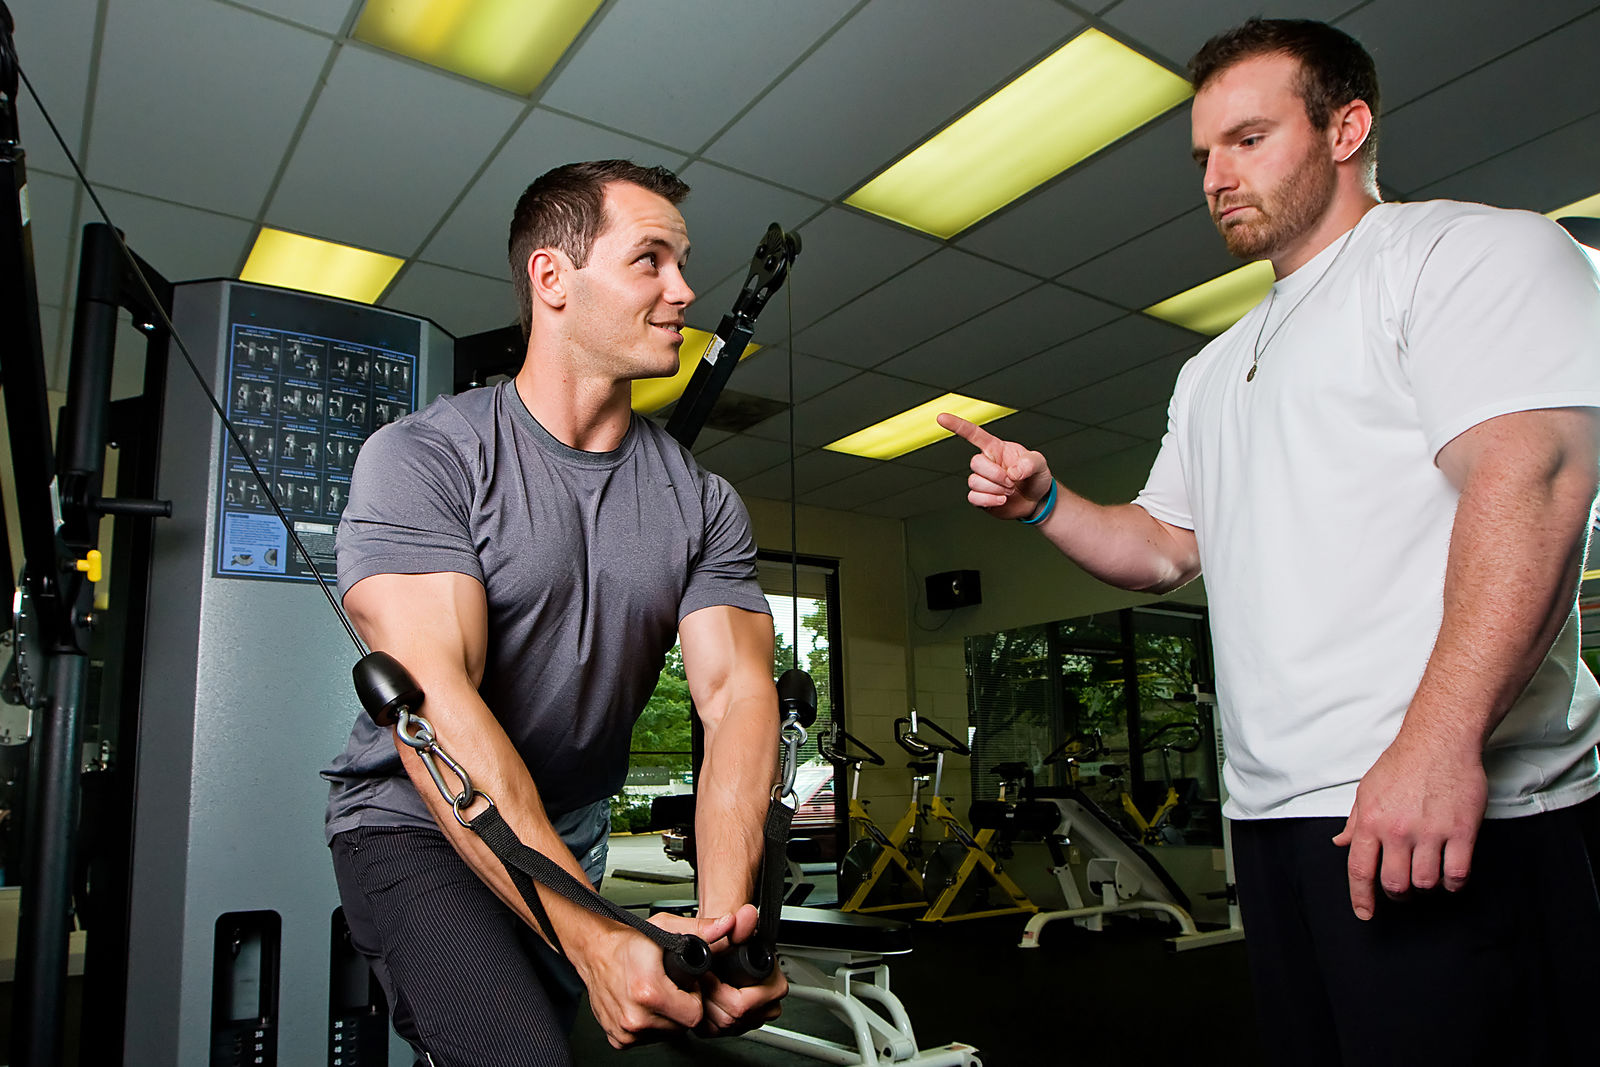 What skills do you need to become a personal trainer?